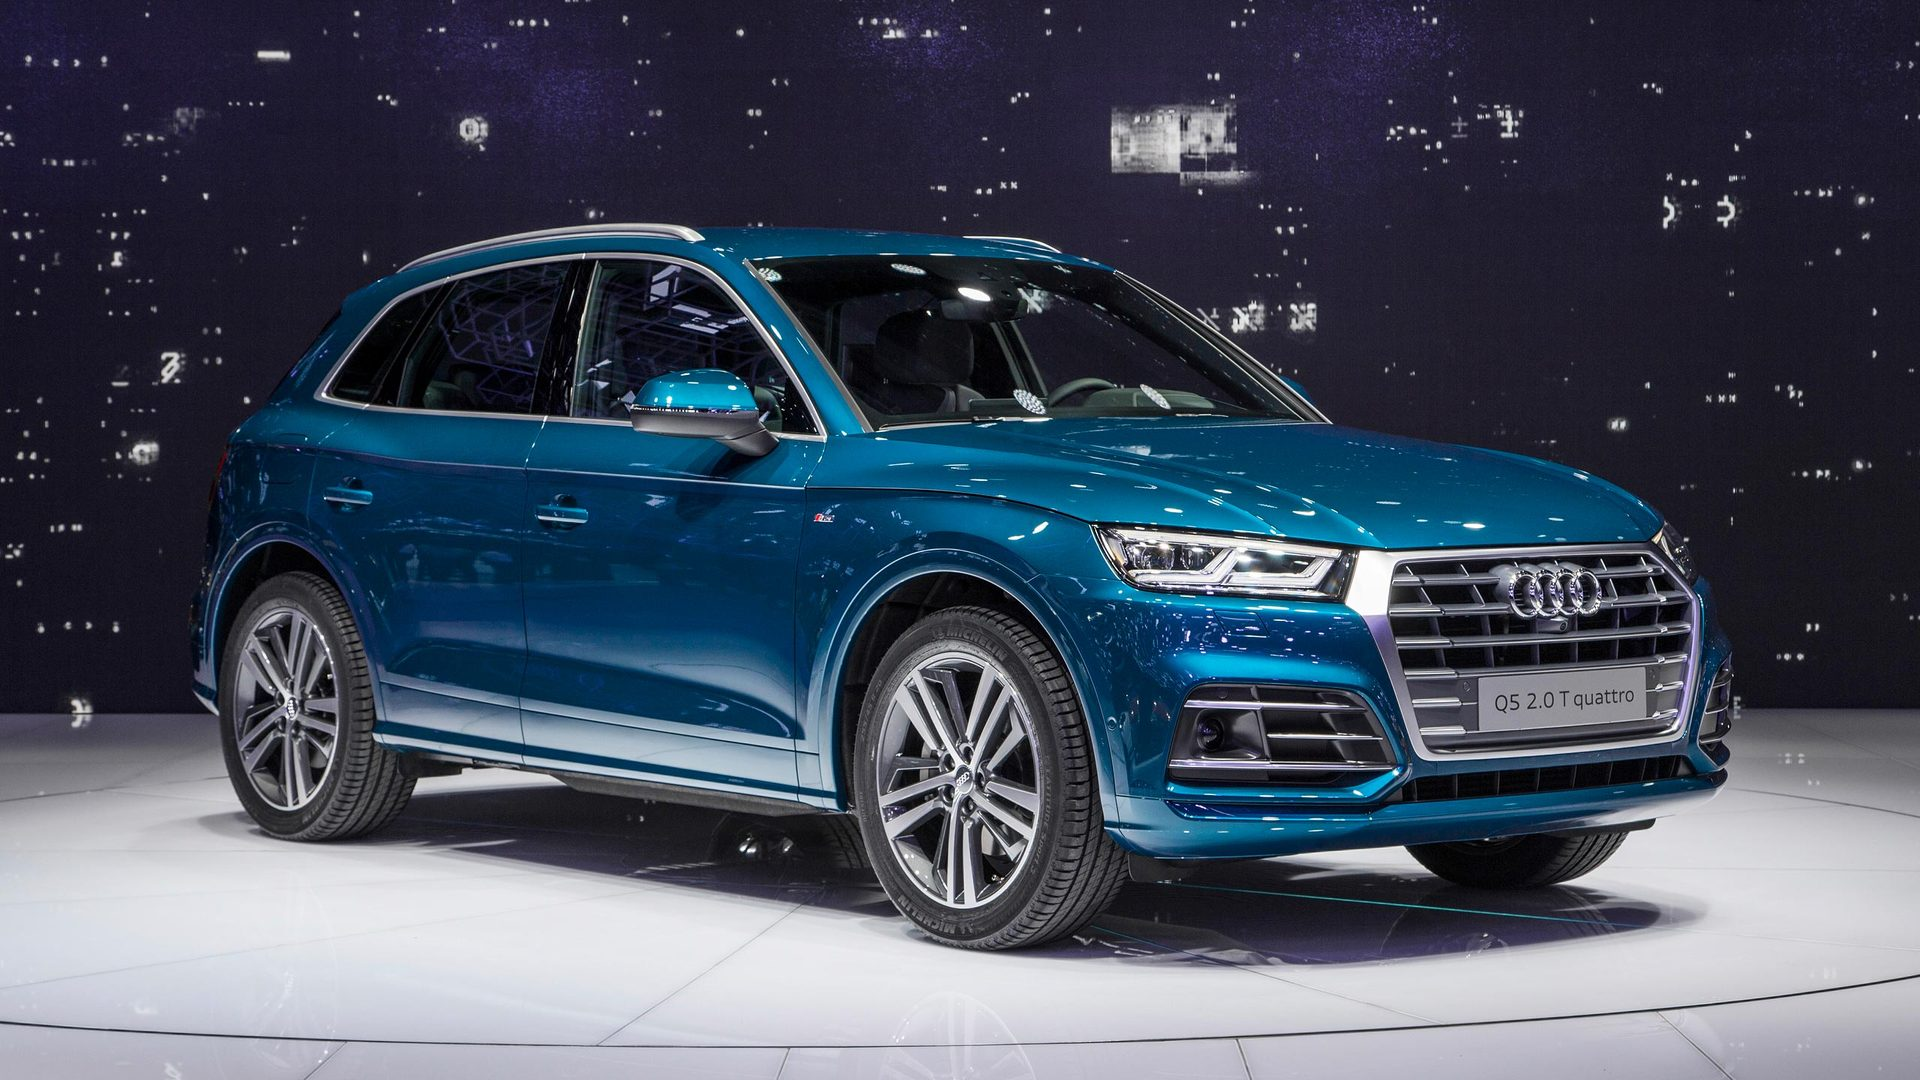 2017 audi q5 blue 200 interior and exterior images. Black Bedroom Furniture Sets. Home Design Ideas